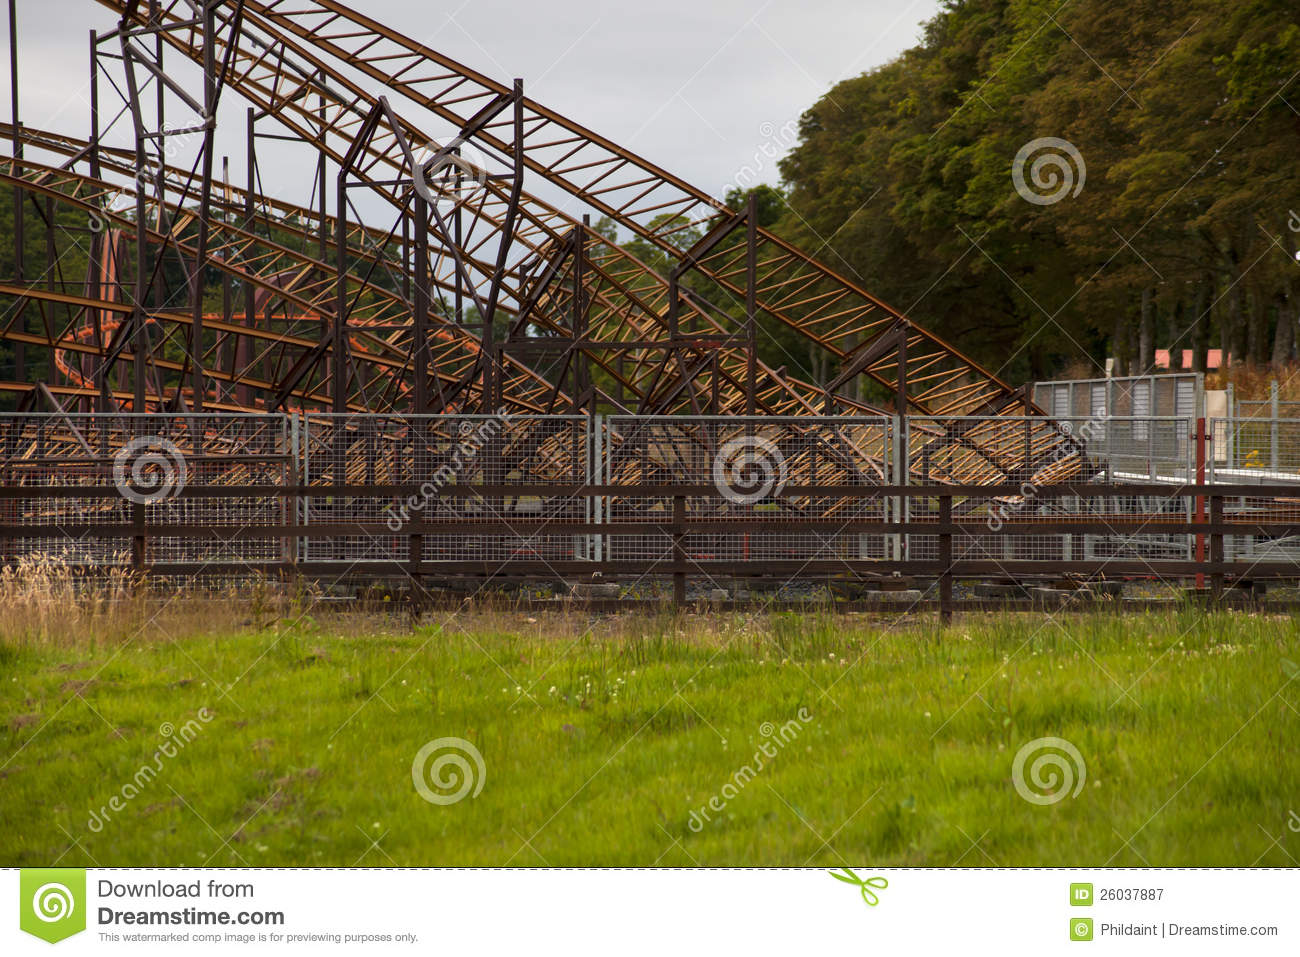 Theme Park Roller Coaster Stock Image Image Of Amusement Architectural 26037887